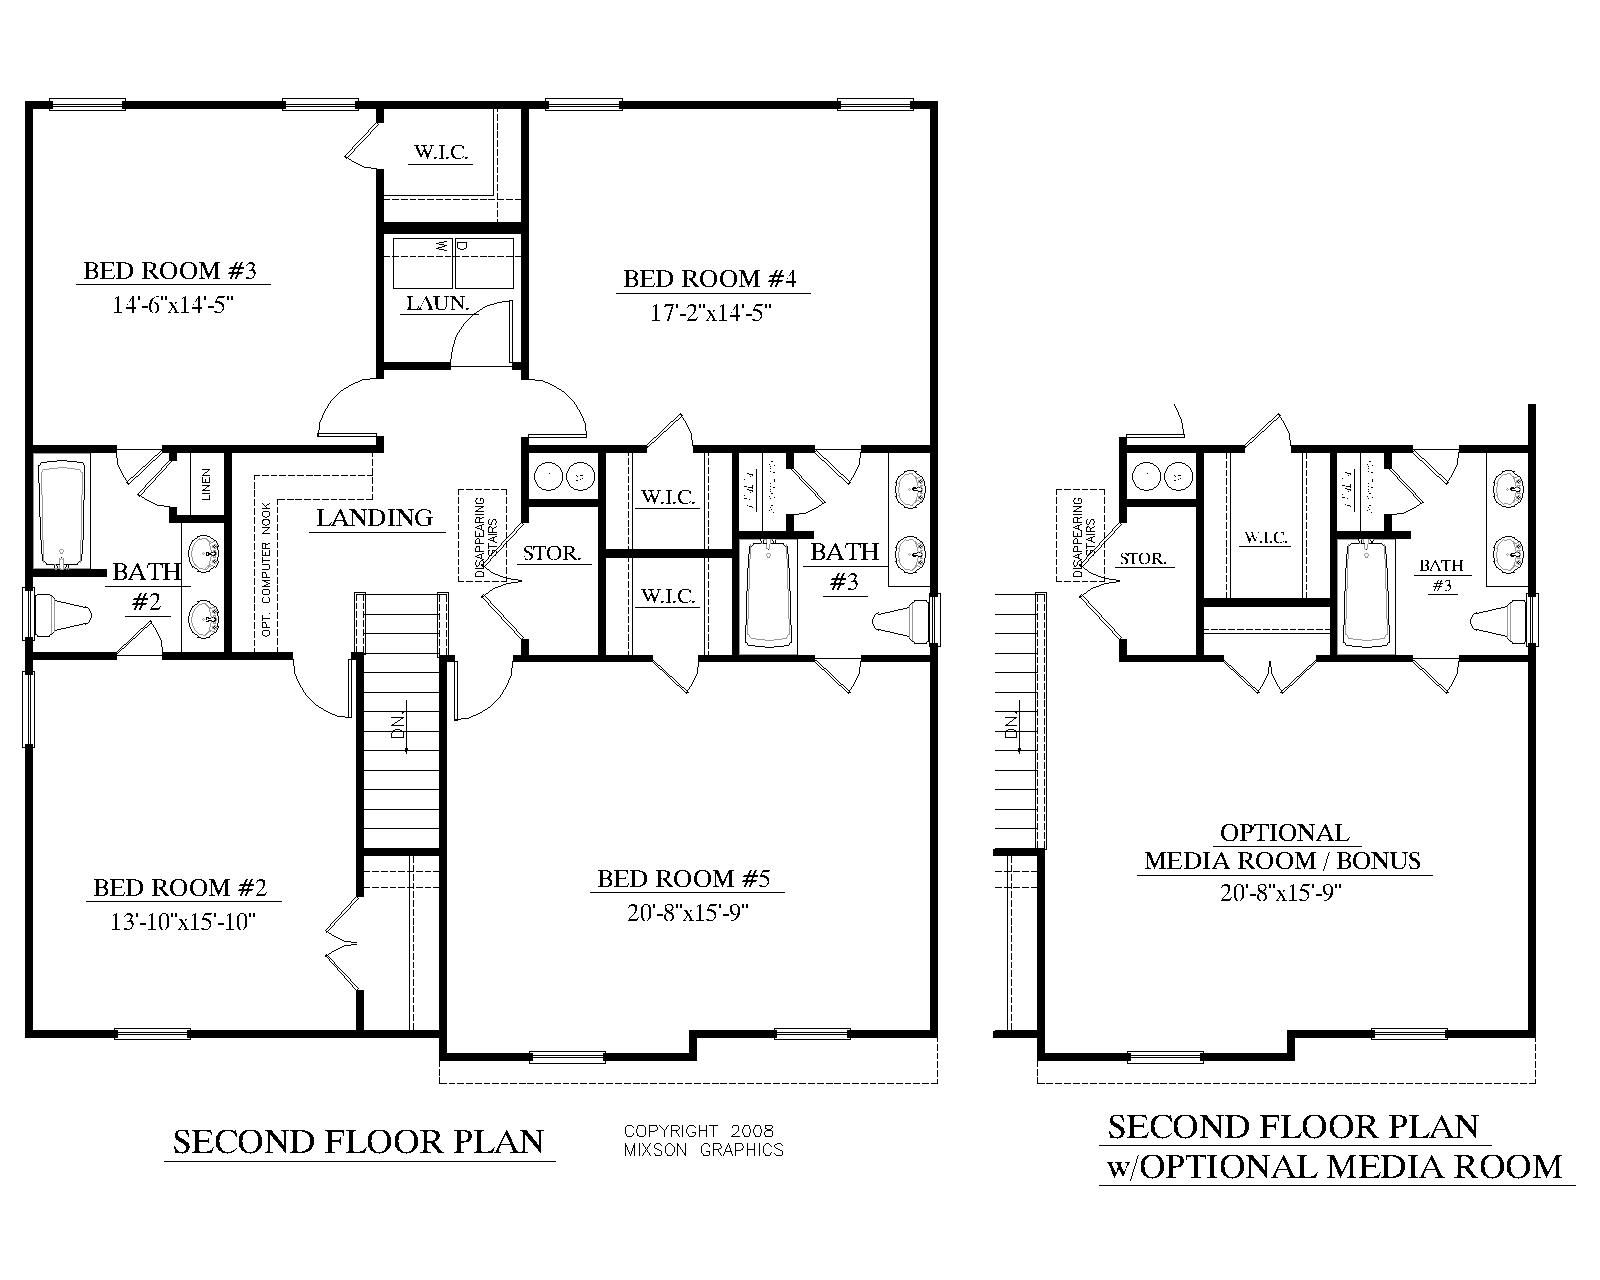 House Plan 2691A McCormick 2nd floor plan 2691 Square